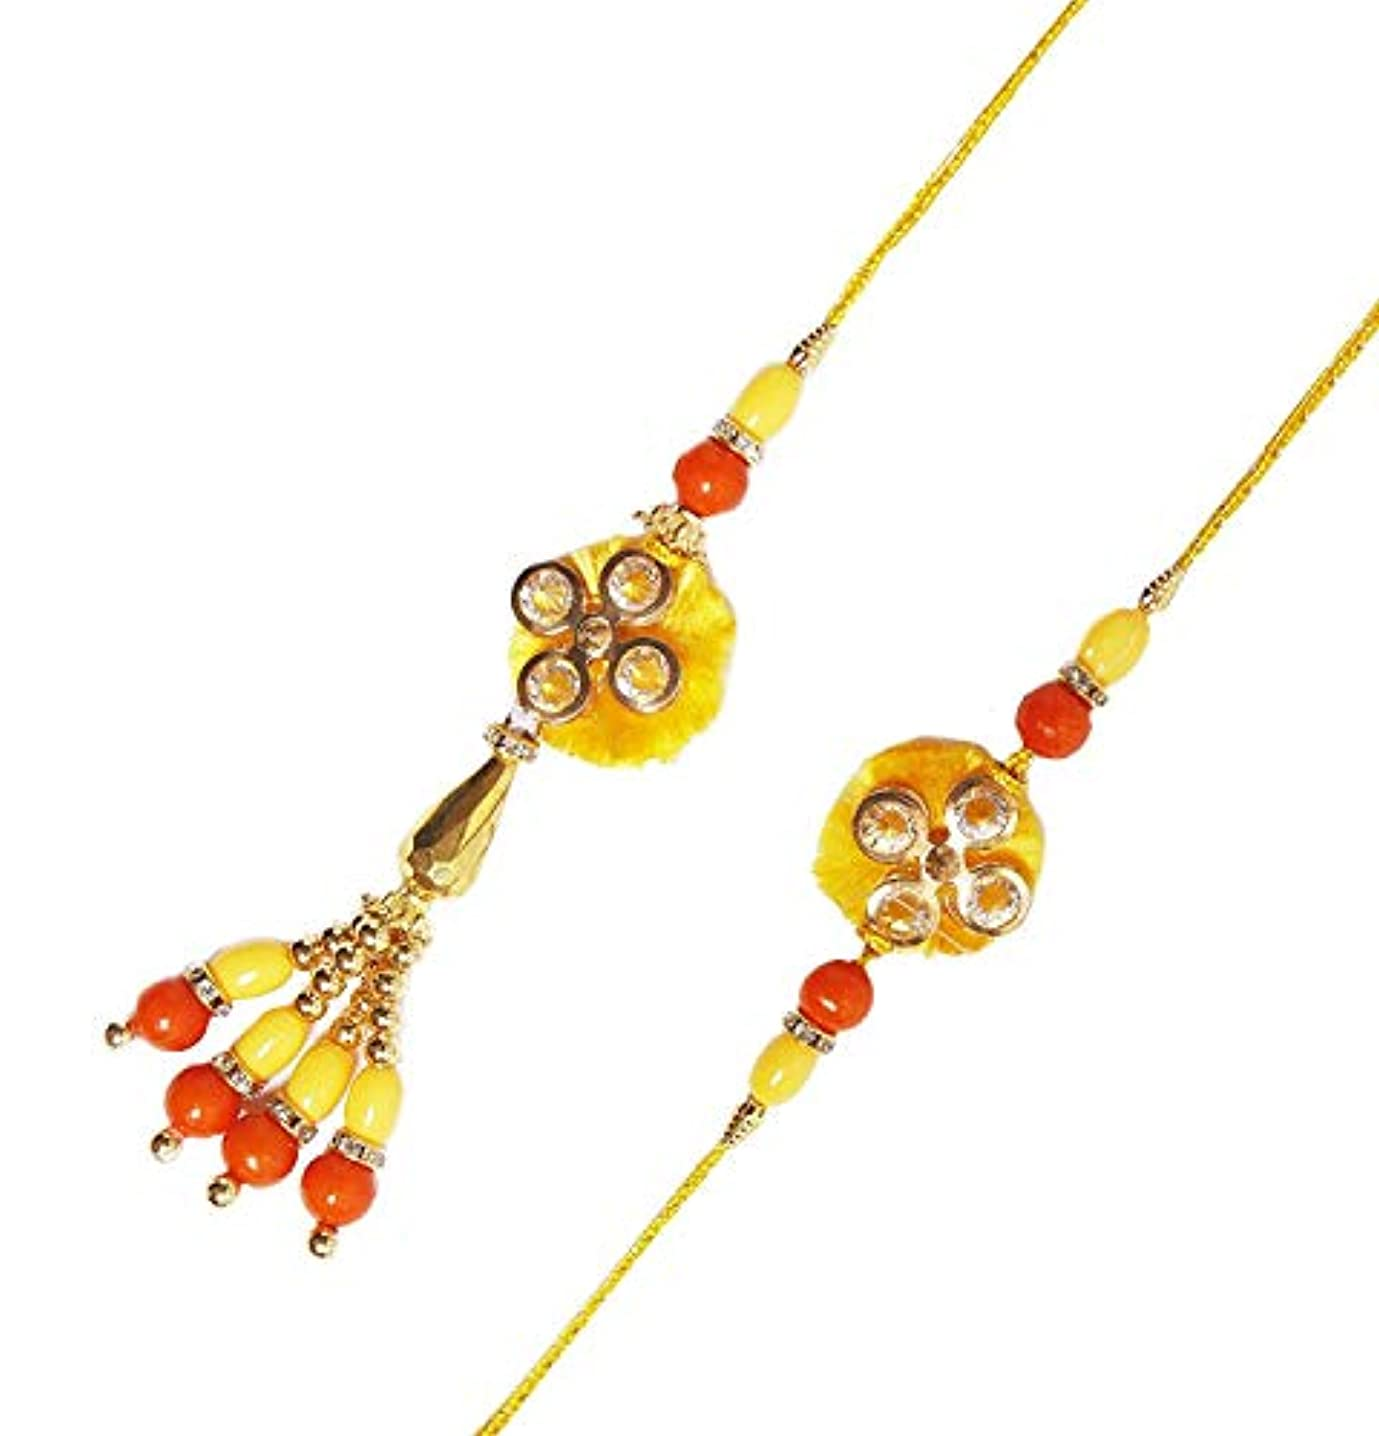 Lumba Rakhi Bhaiya Bhabhi Rakhi for Brother Bhai Bhaiya with Beads Raksha Bandhan Traditional Rakhee for Kids Indian Hindu Festival